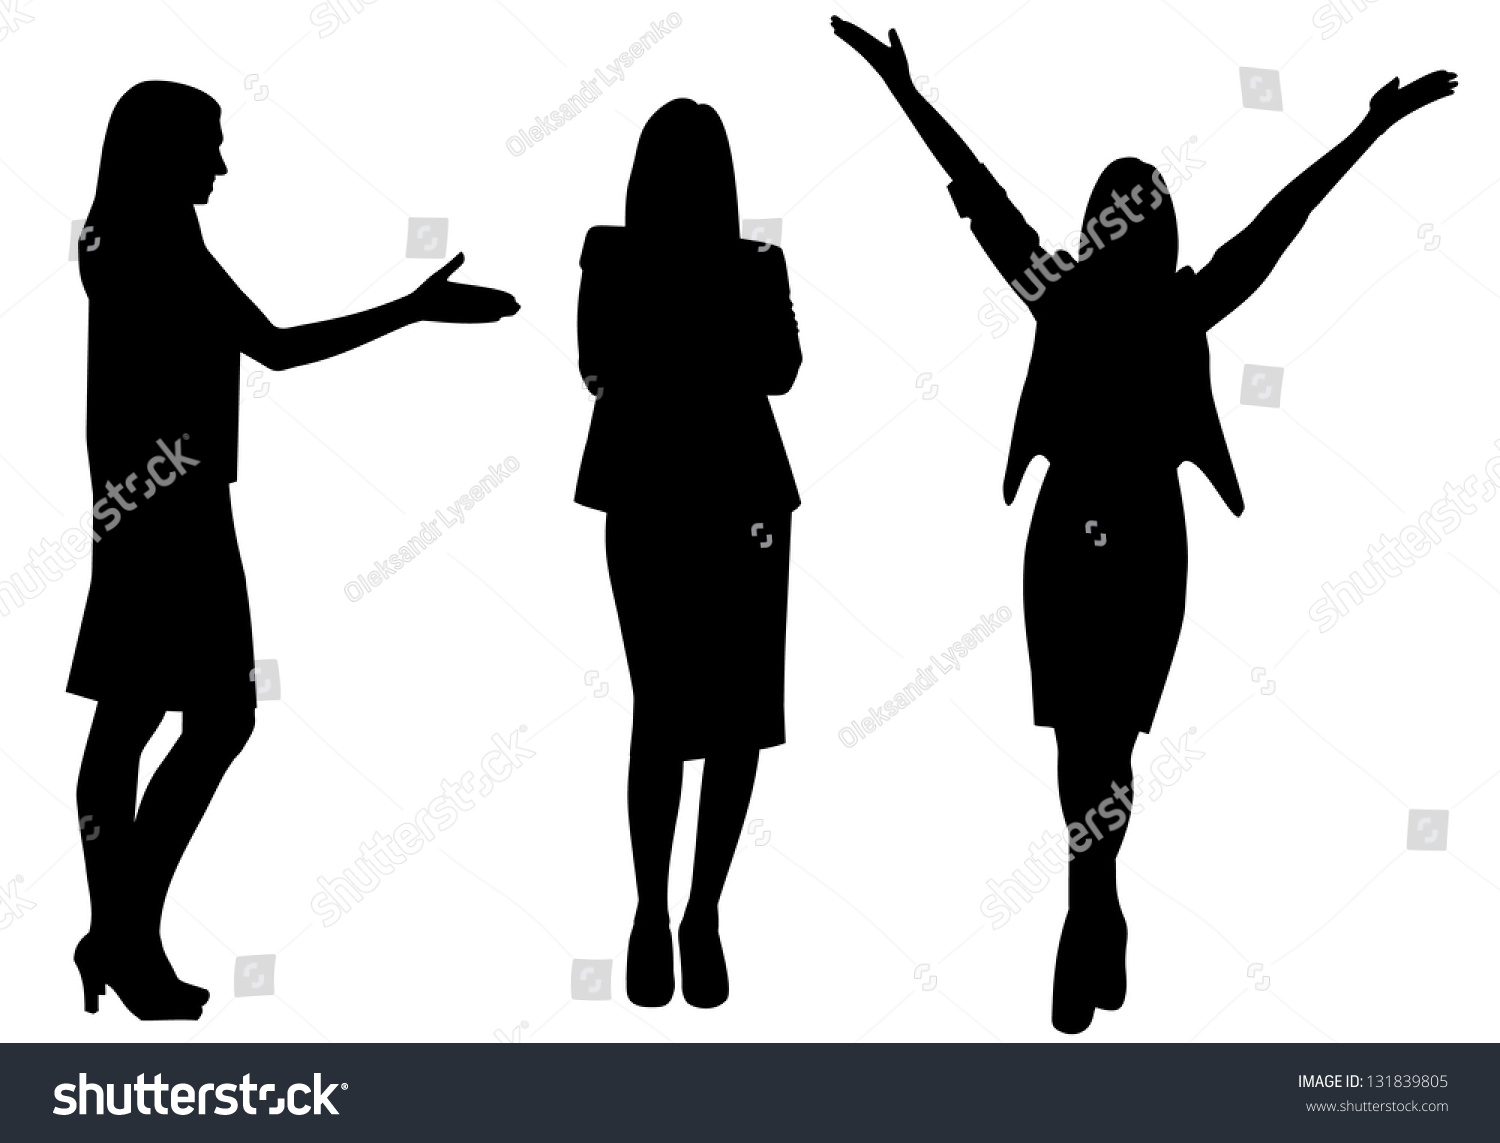 Clip Art Of Women Standing Together